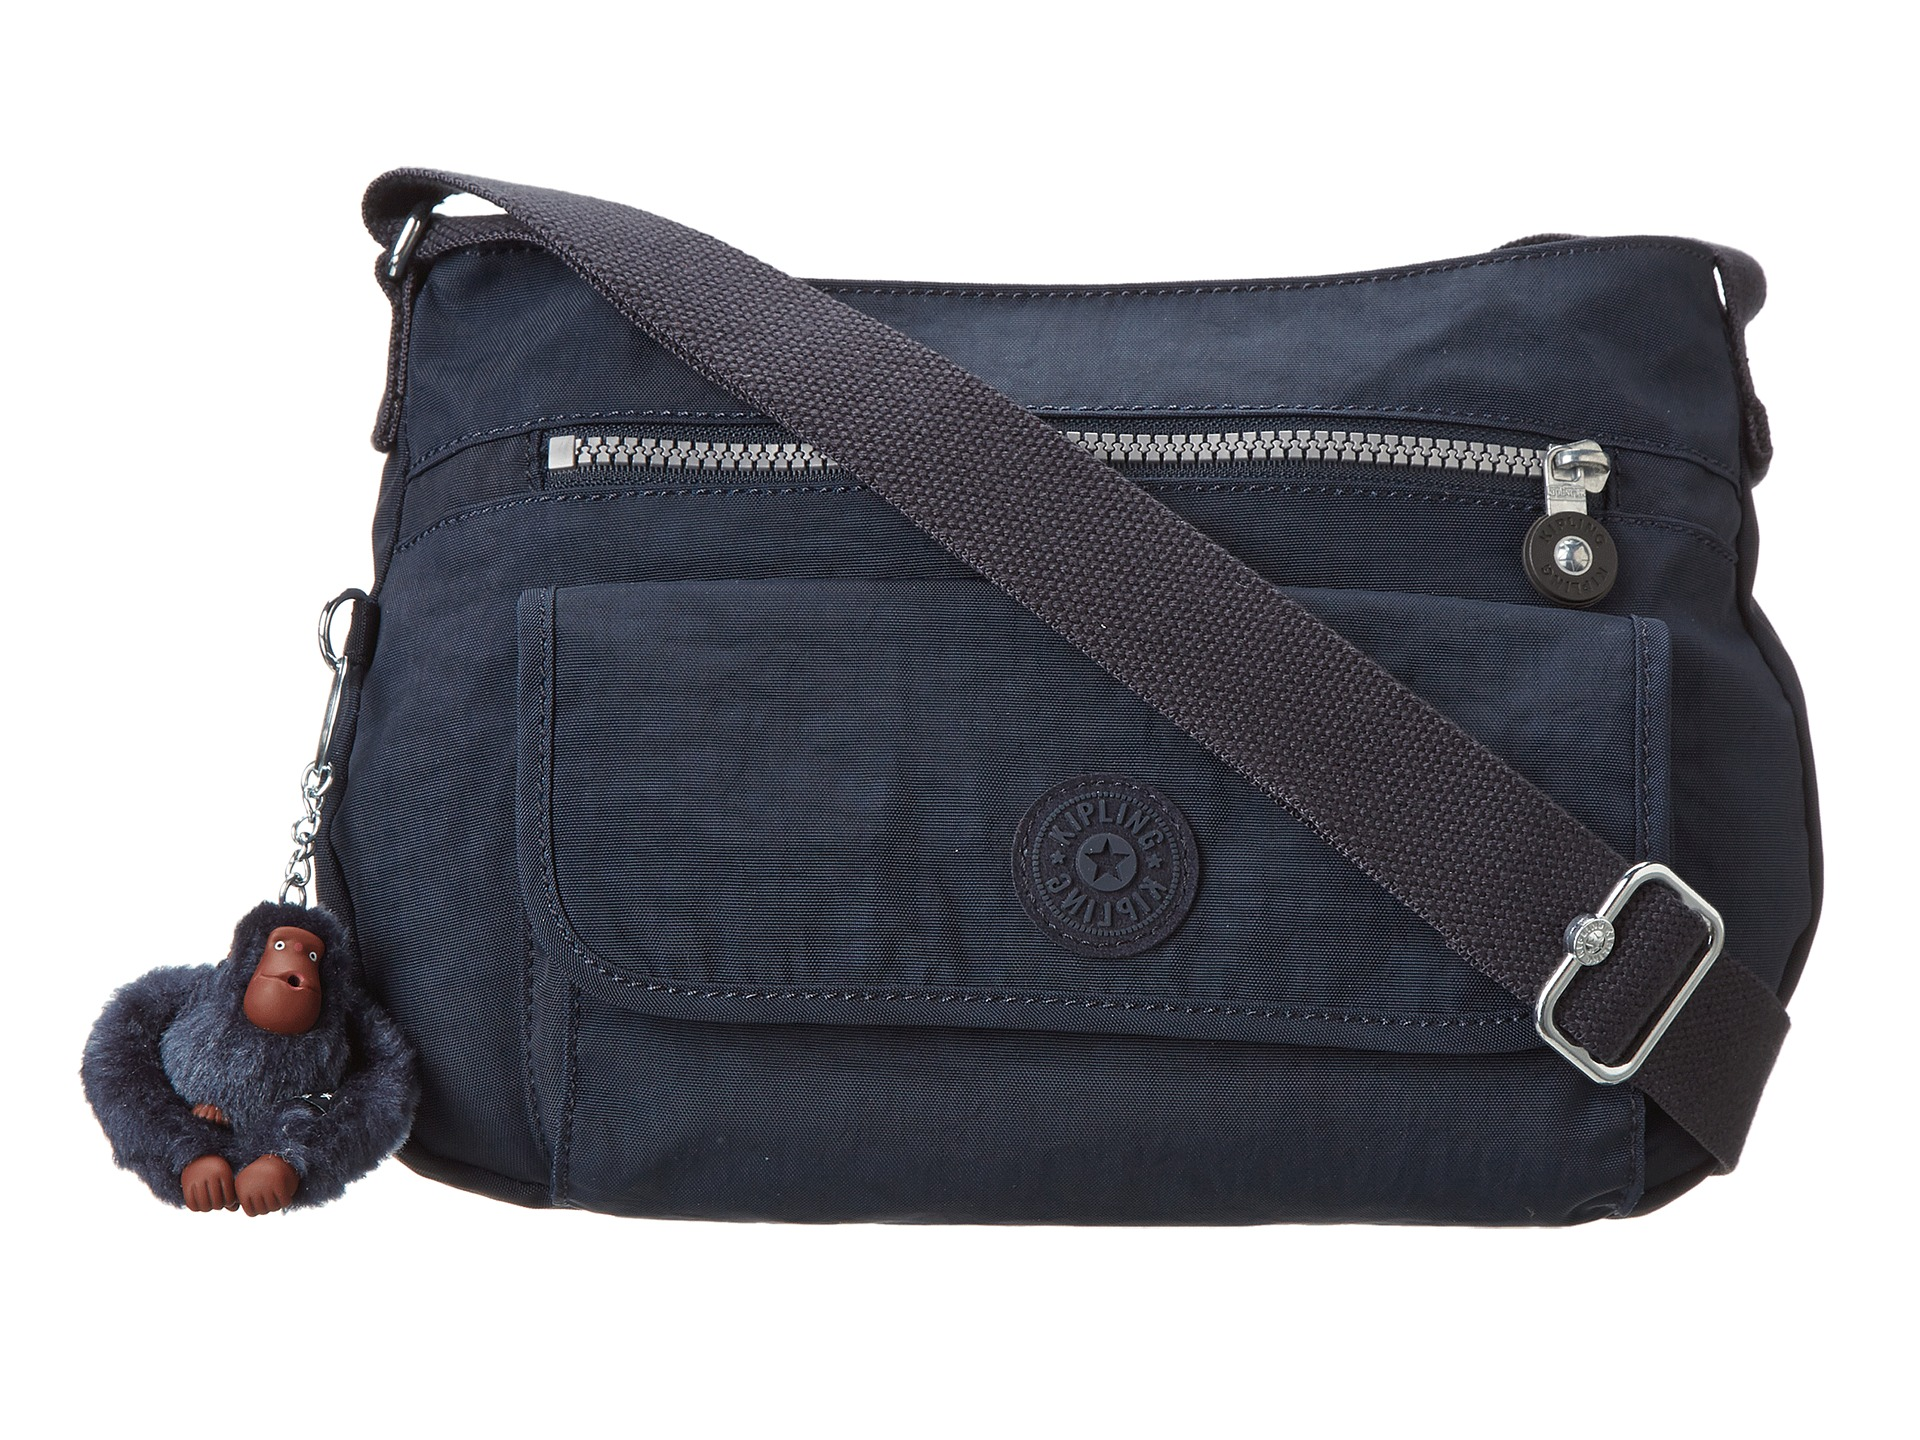 Kipling Syro Crossbody Bag True Blue - Zappos.com Free ...